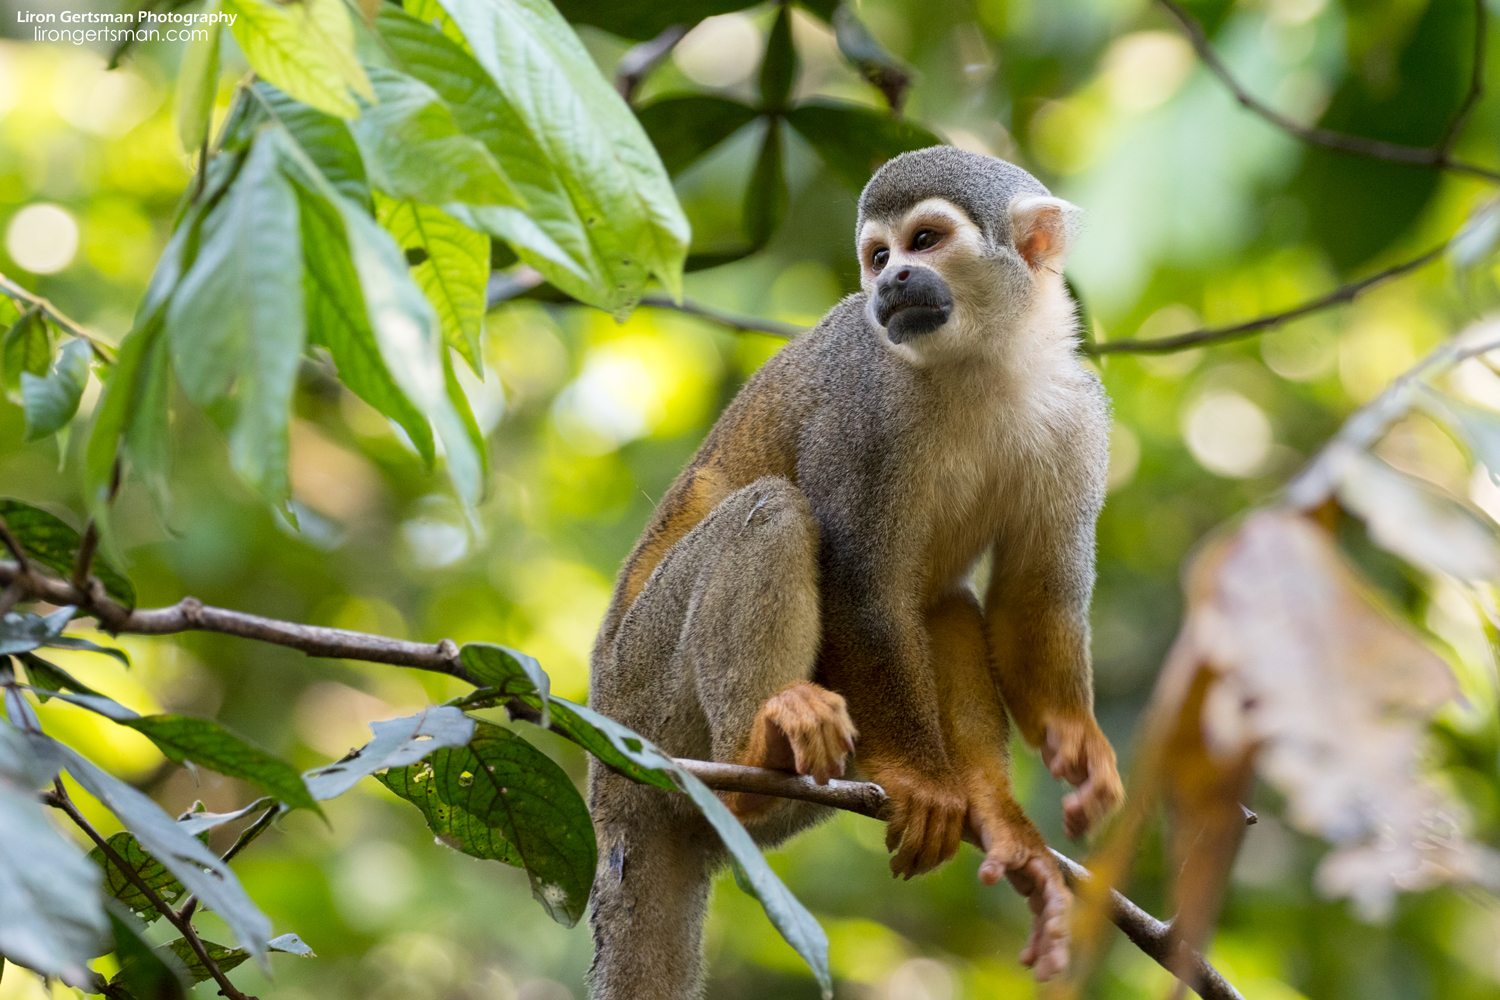 Squirrel-Monkey-web.jpg